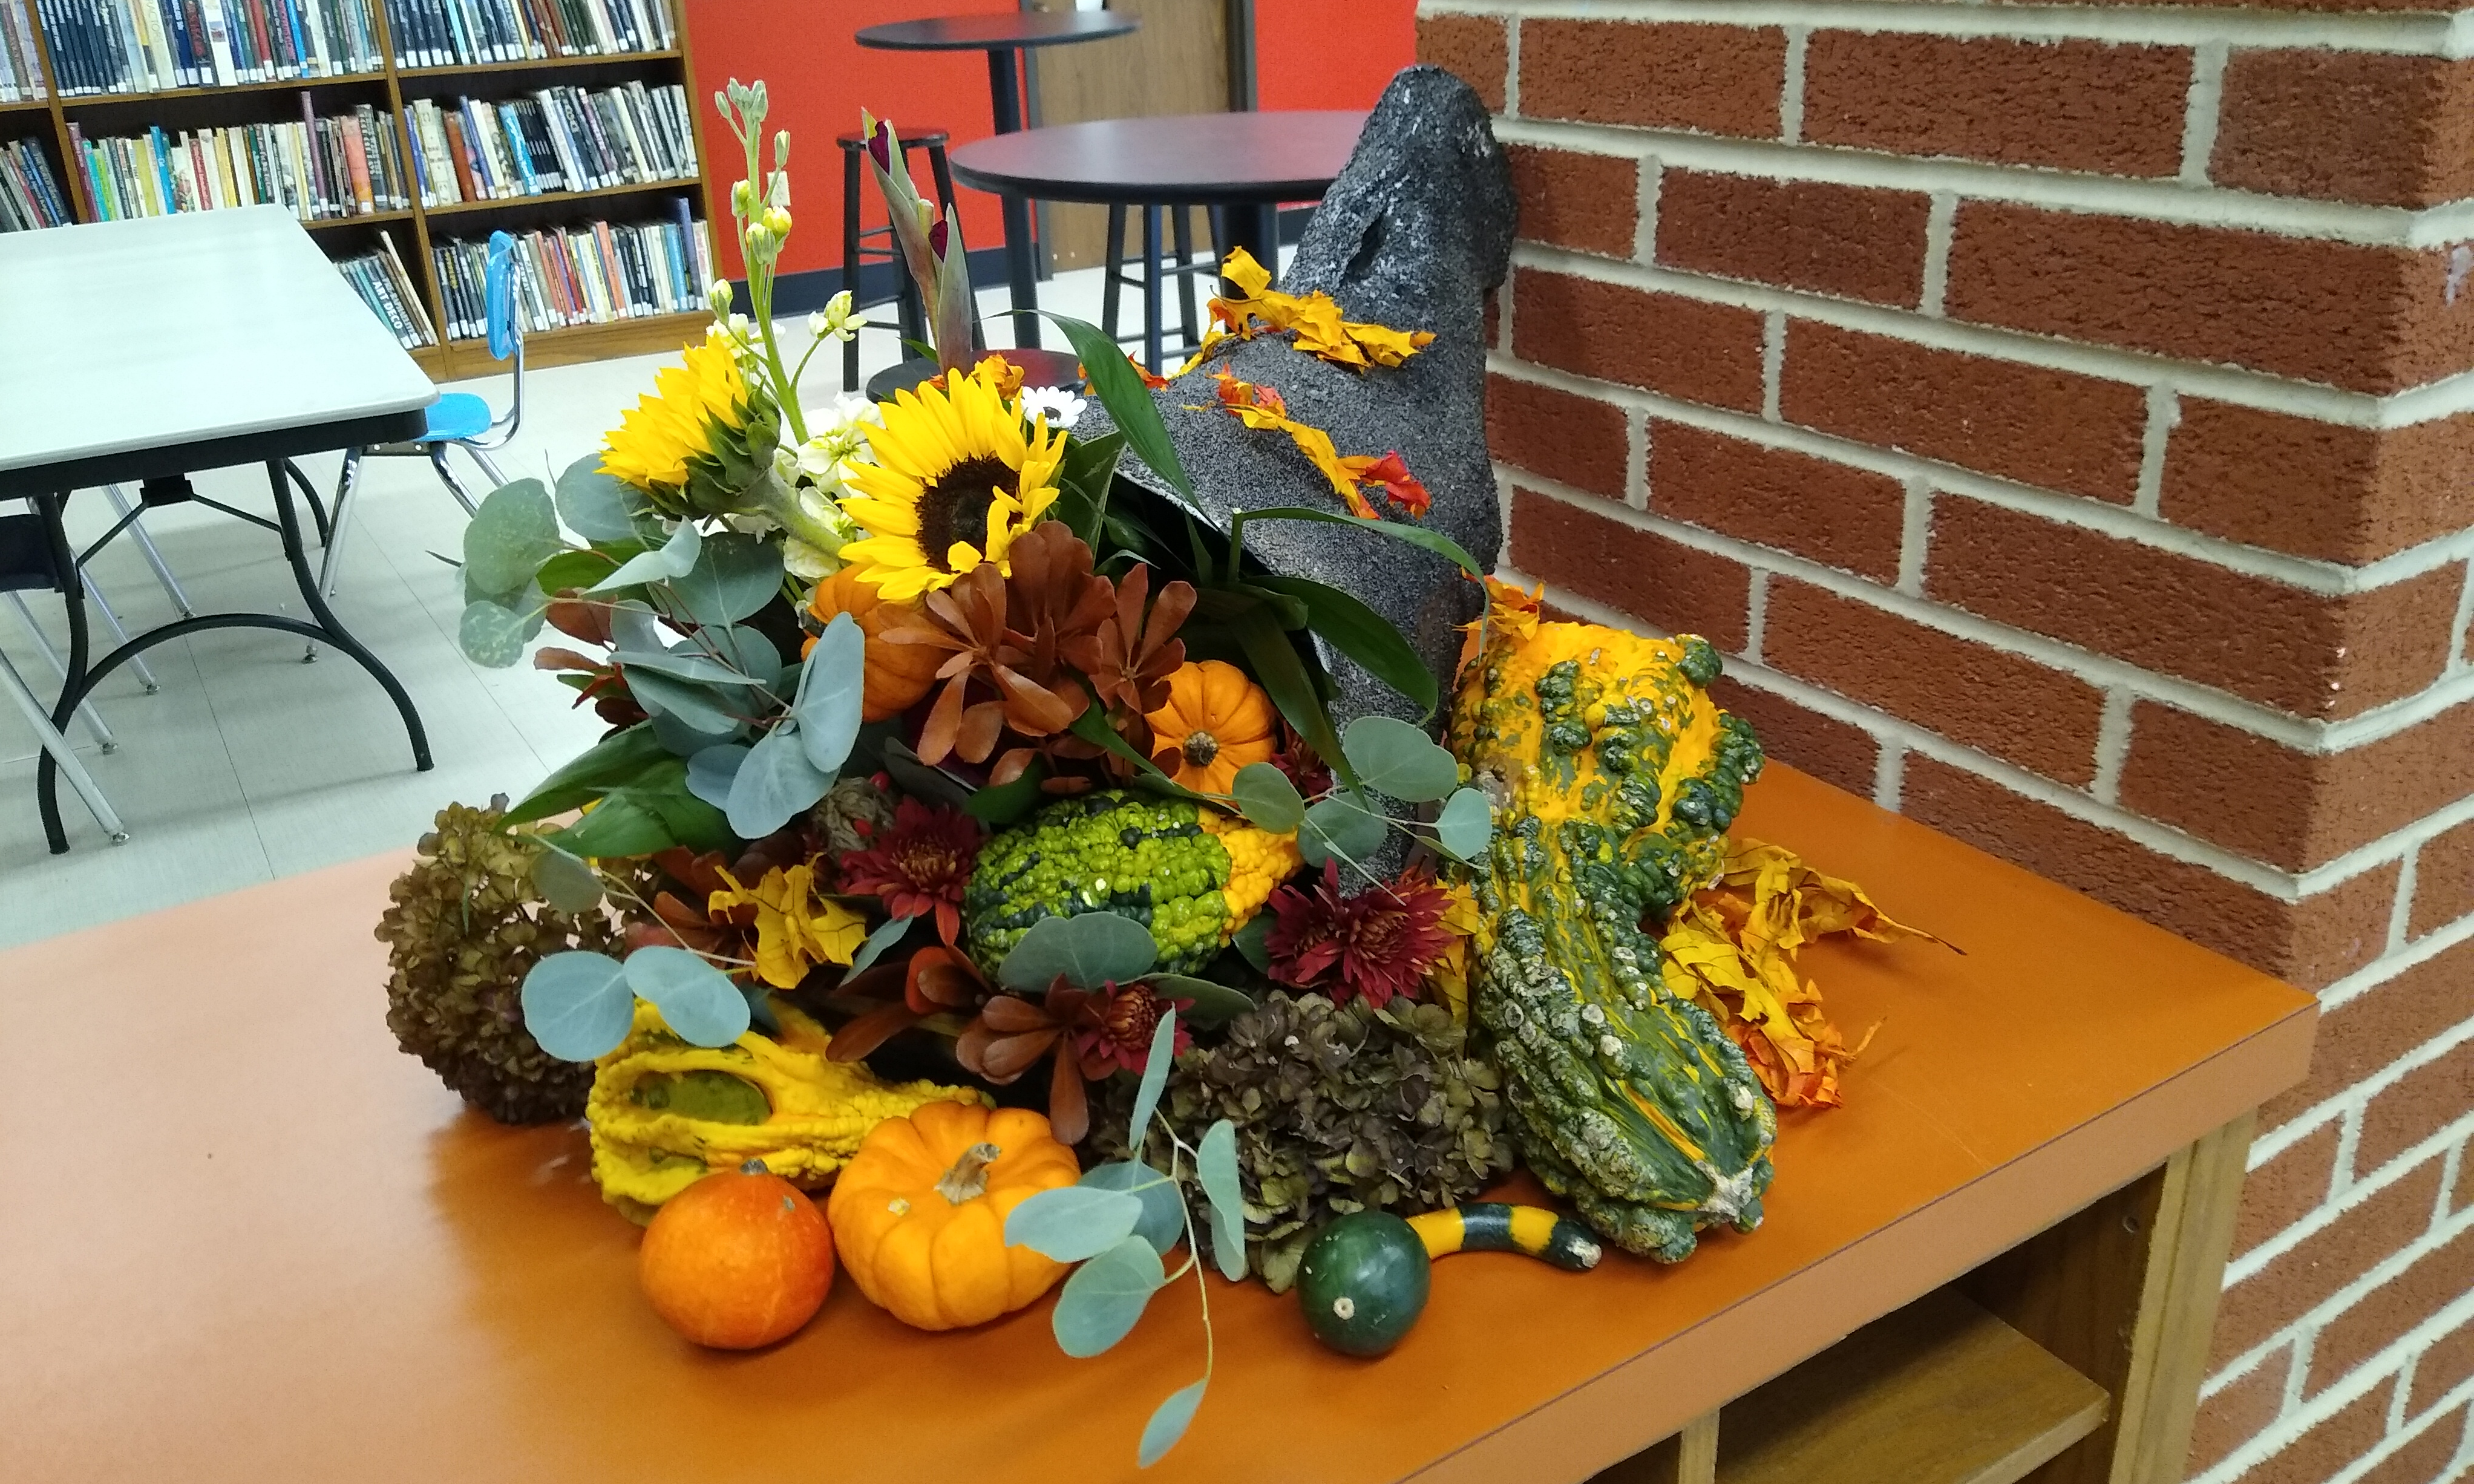 Cornucopia display created by students in the Floriculture class and made entirely of natural materials.